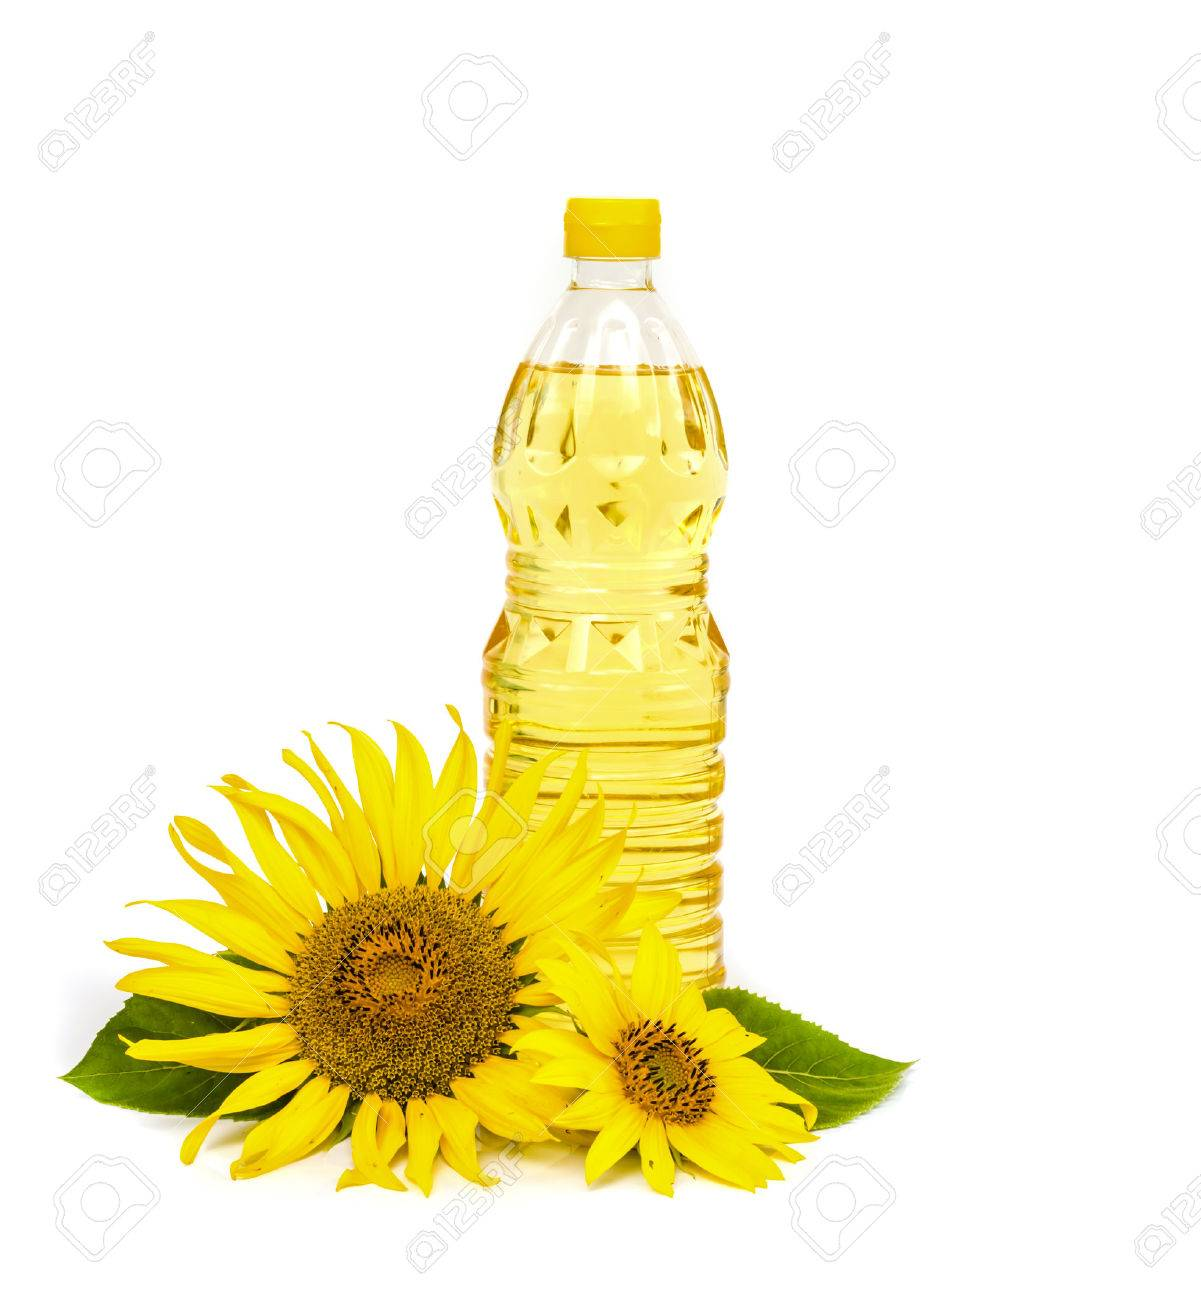 Bottle of sunflower oil with sunflower isolated on white background. - 41294877